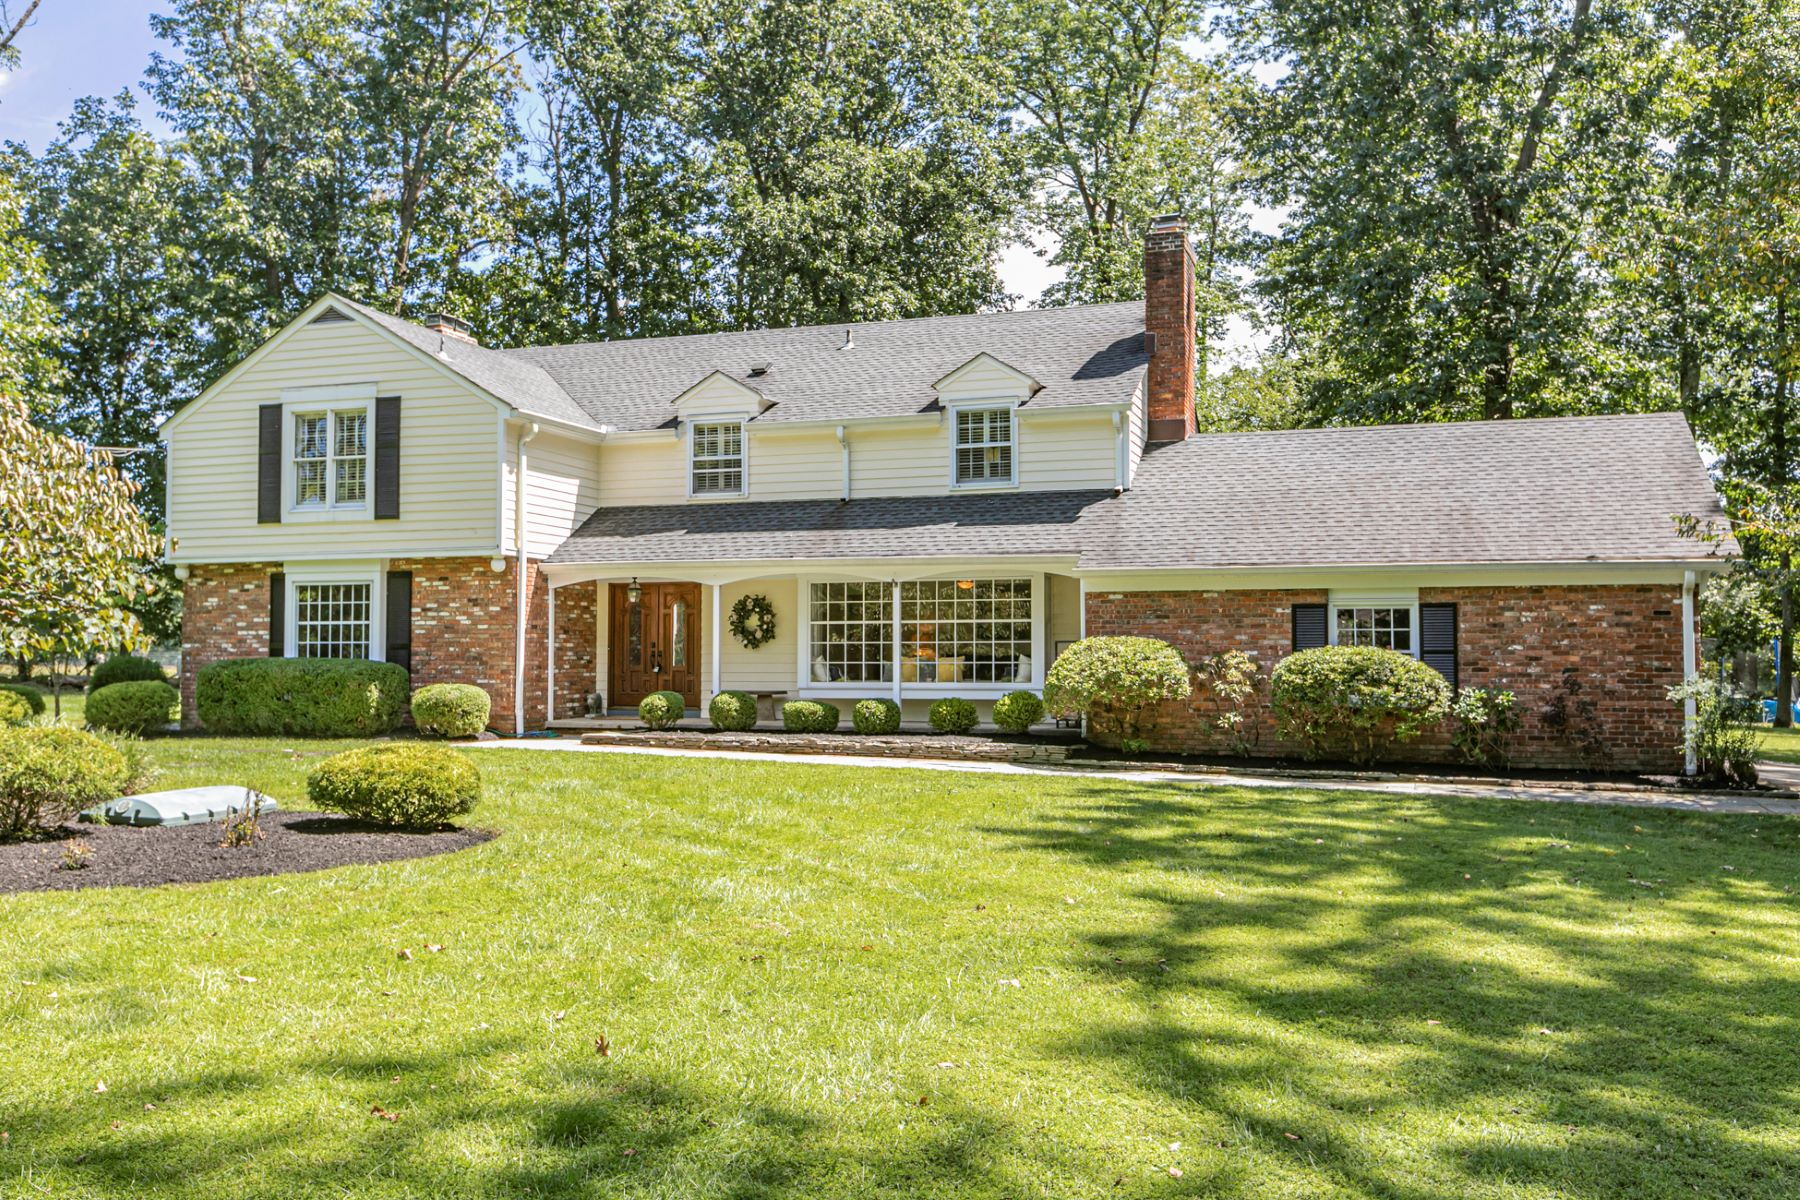 Single Family Homes for Sale at Beautifully Presented Cul-de-Sac Home With Farm Views 7 Beechtree Lane, Princeton, New Jersey 08540 United States